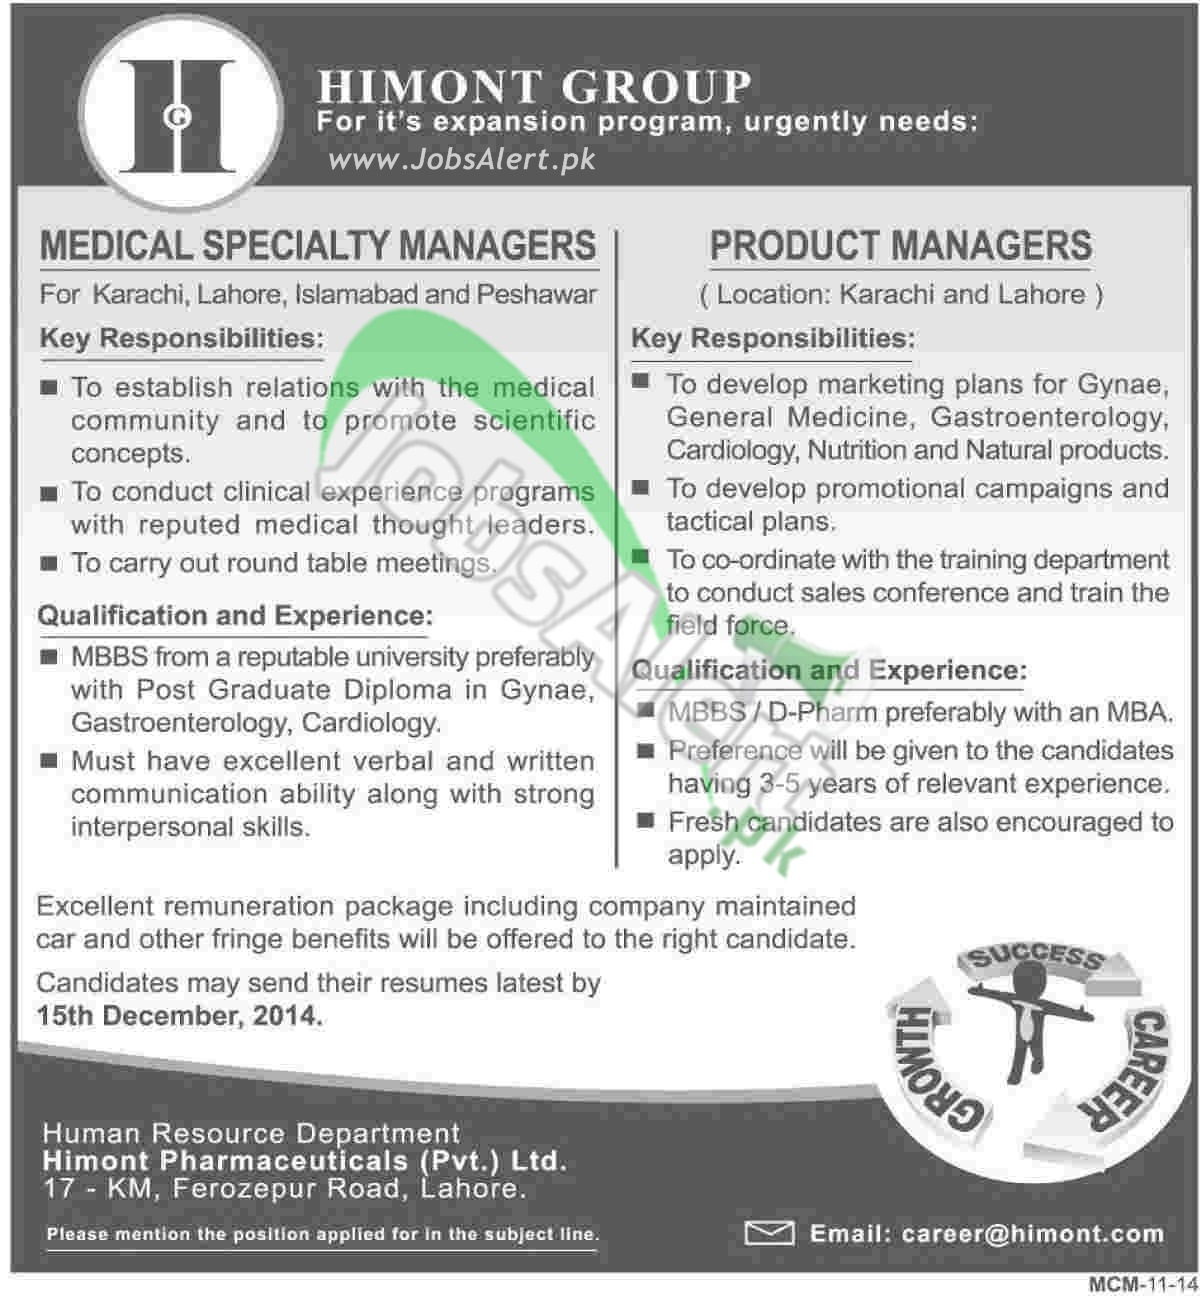 Himont Group